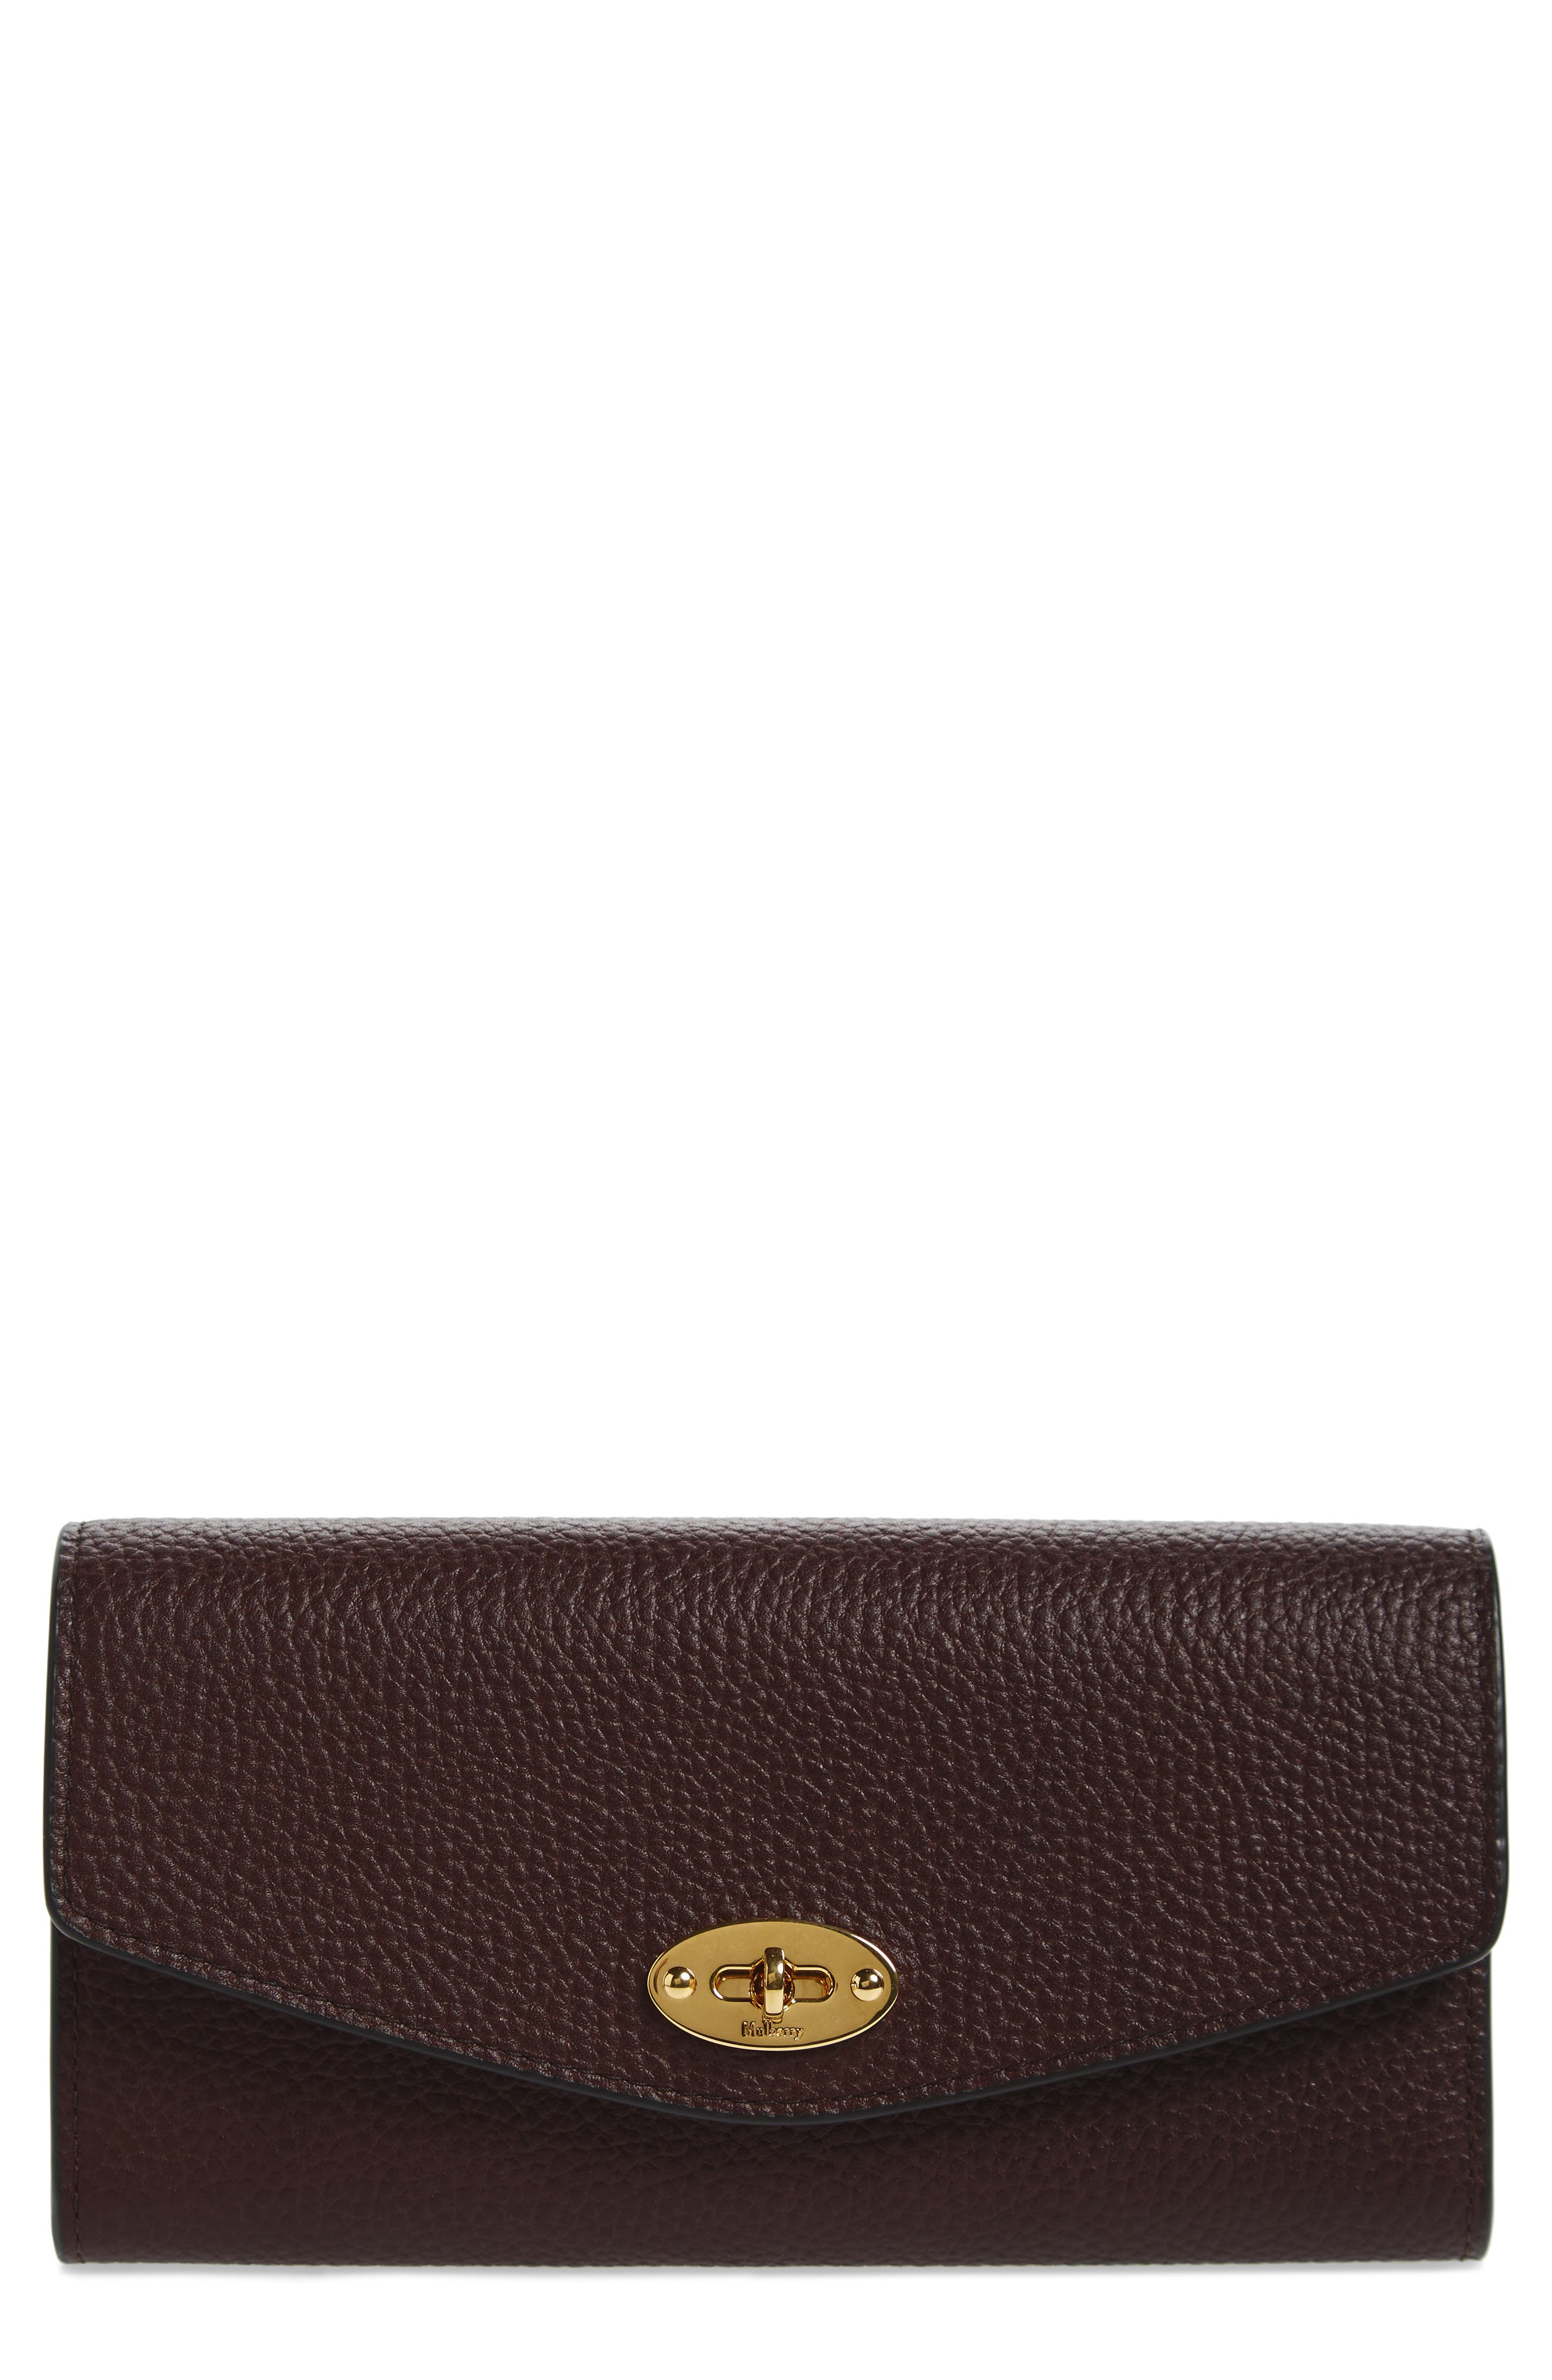 Darley Continental Calfskin Leather Wallet,                             Main thumbnail 1, color,                             Oxblood